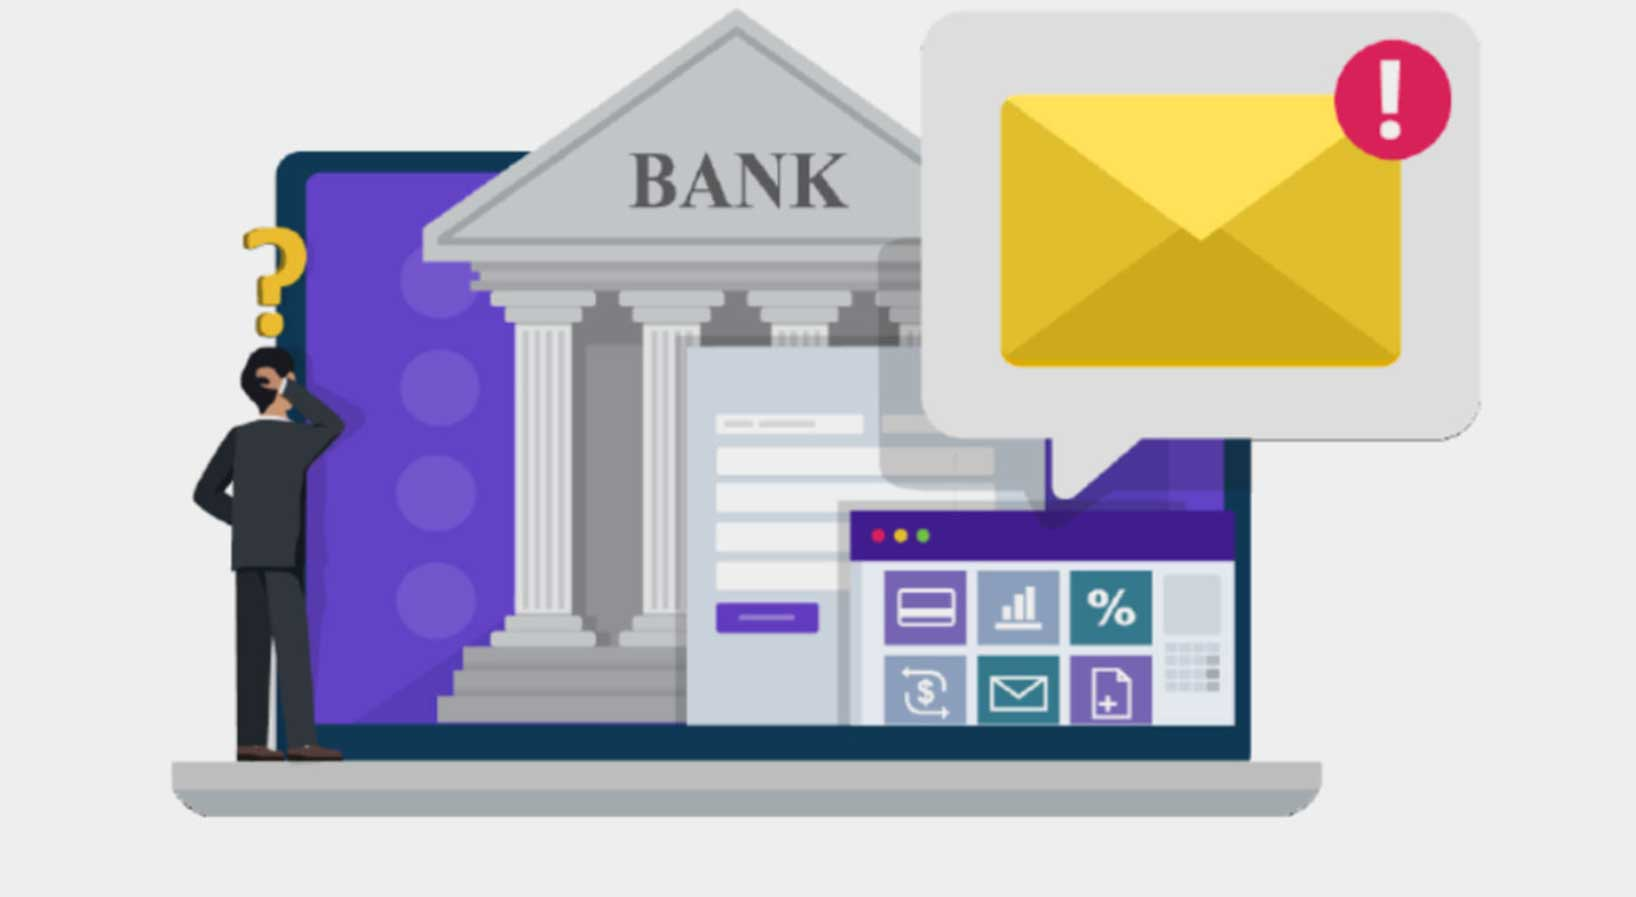 A quizzical man looks at a screen showing an image of a bank, and online banking apps. An email notification looms large in the upper right corner